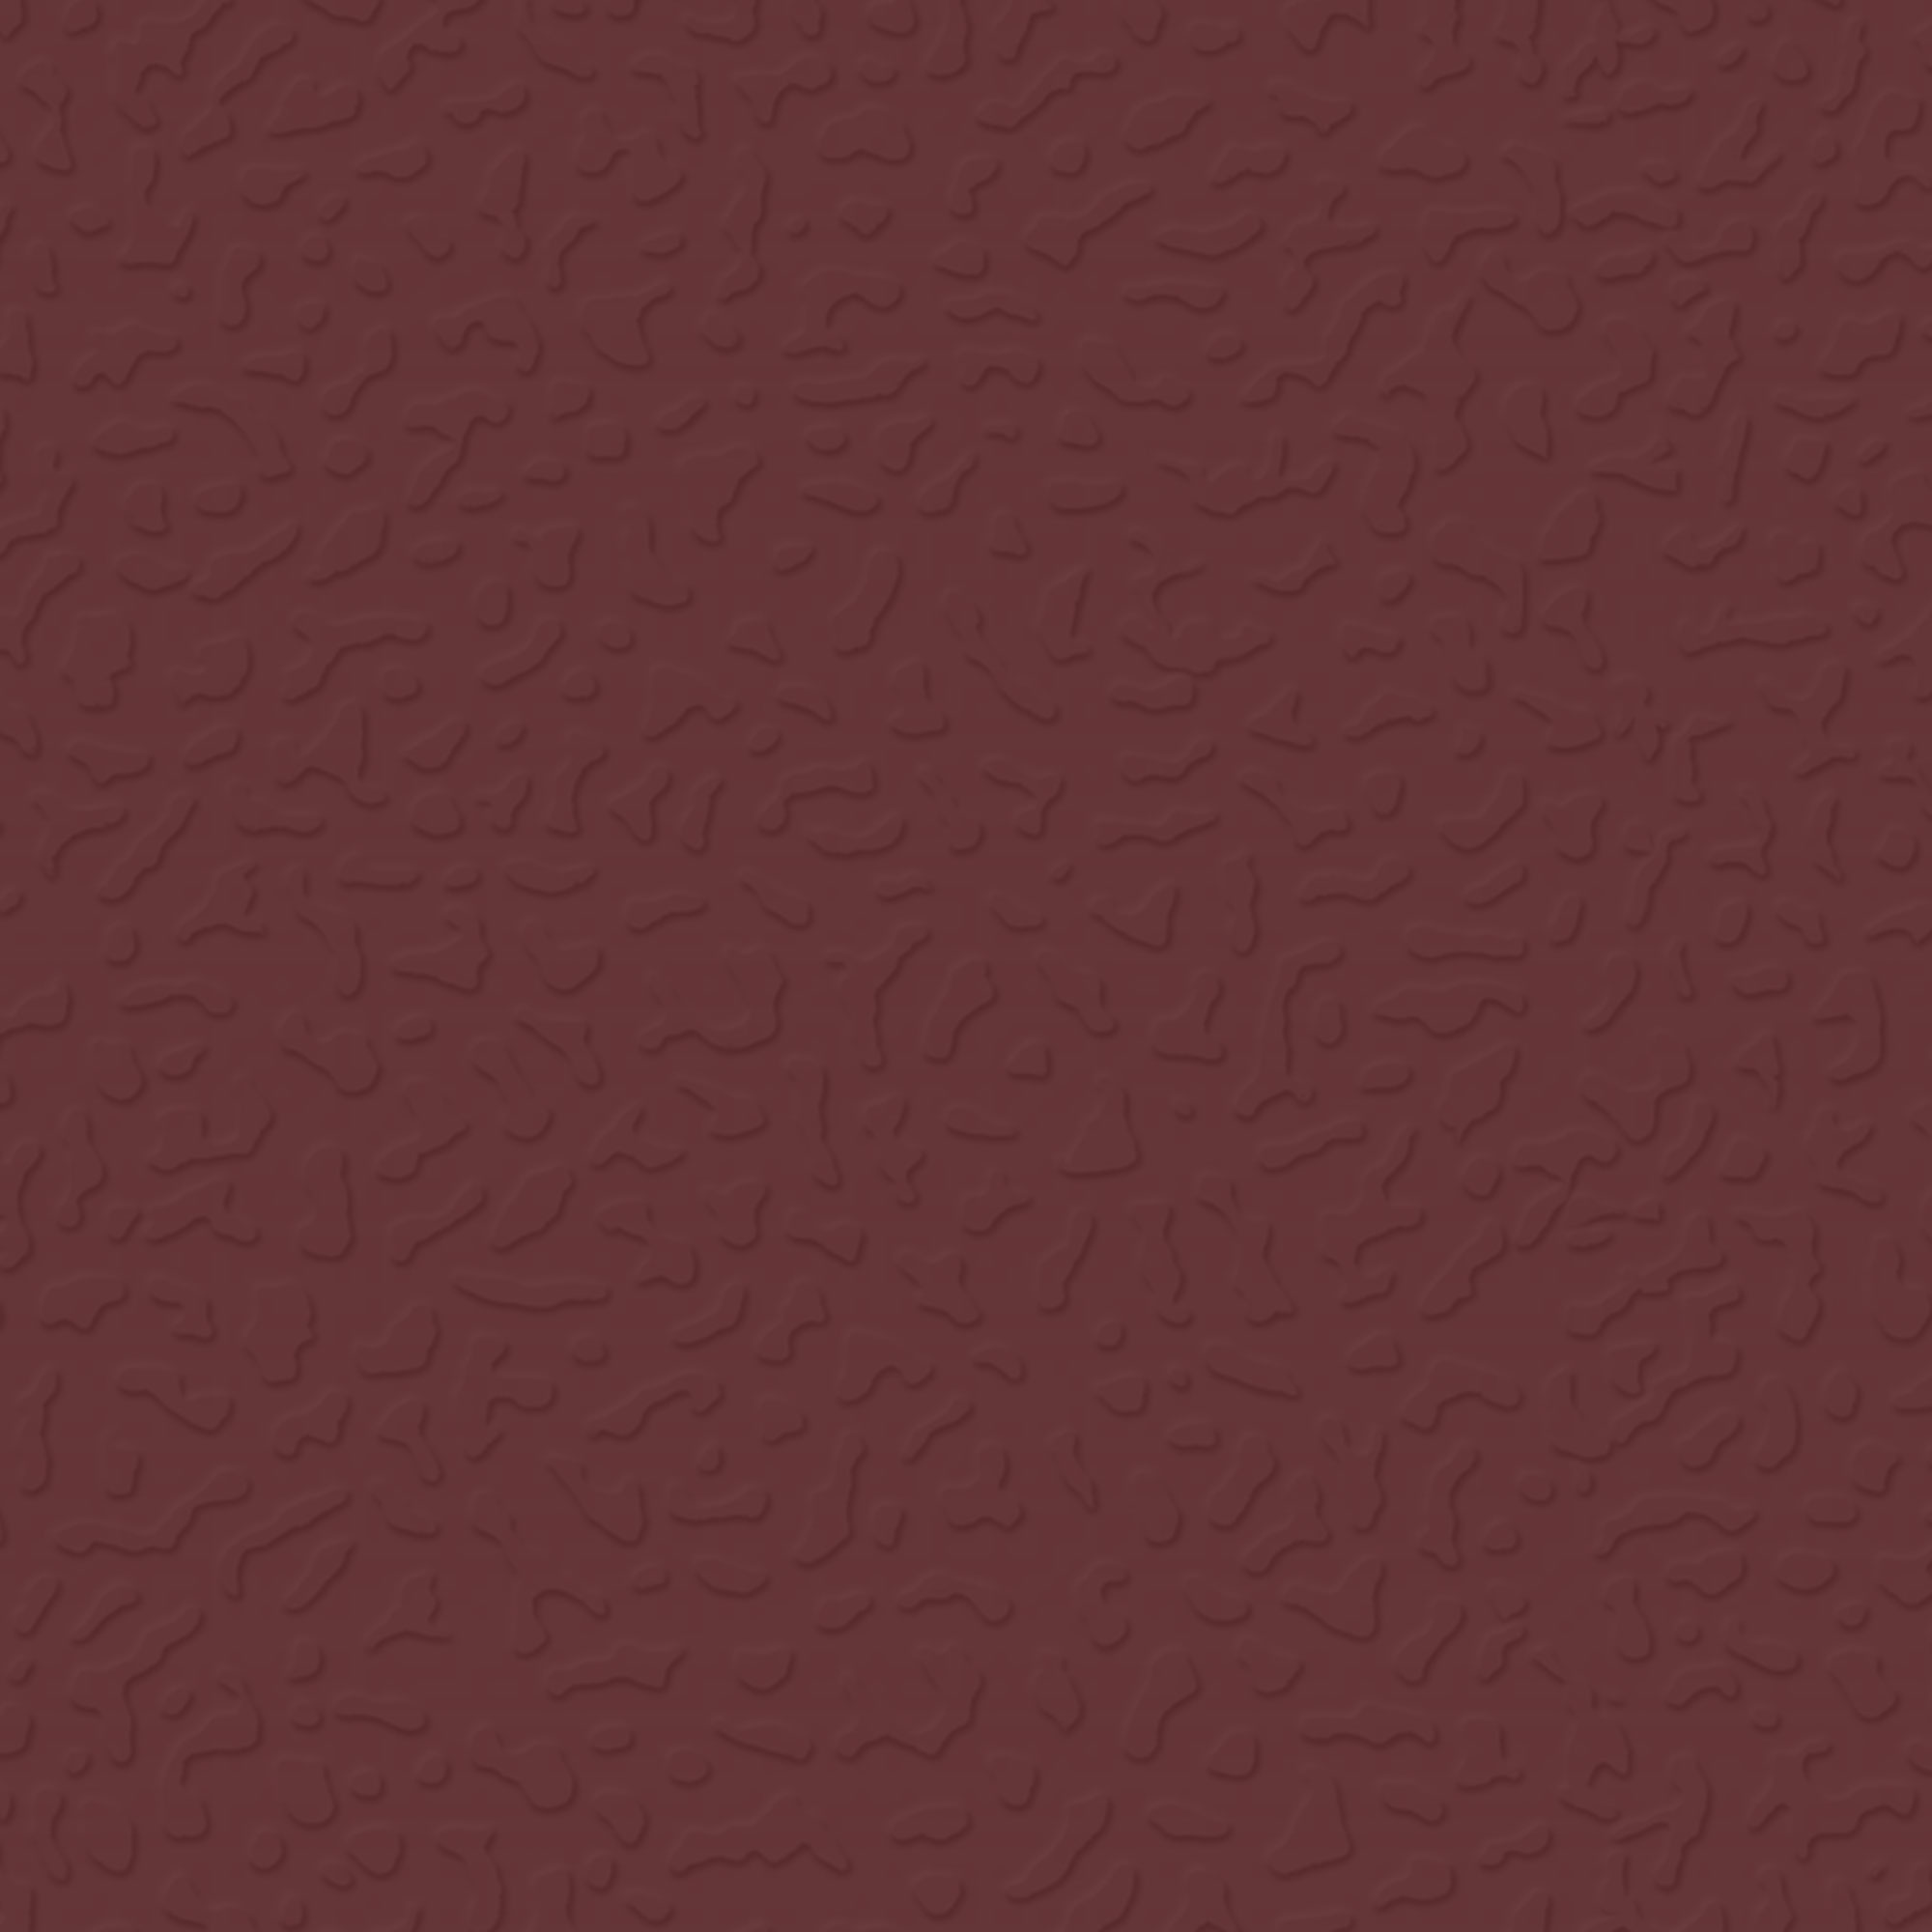 Roppe Rubber Tile 900 - Textured Design (993) Cinnabar Rubber Flooring